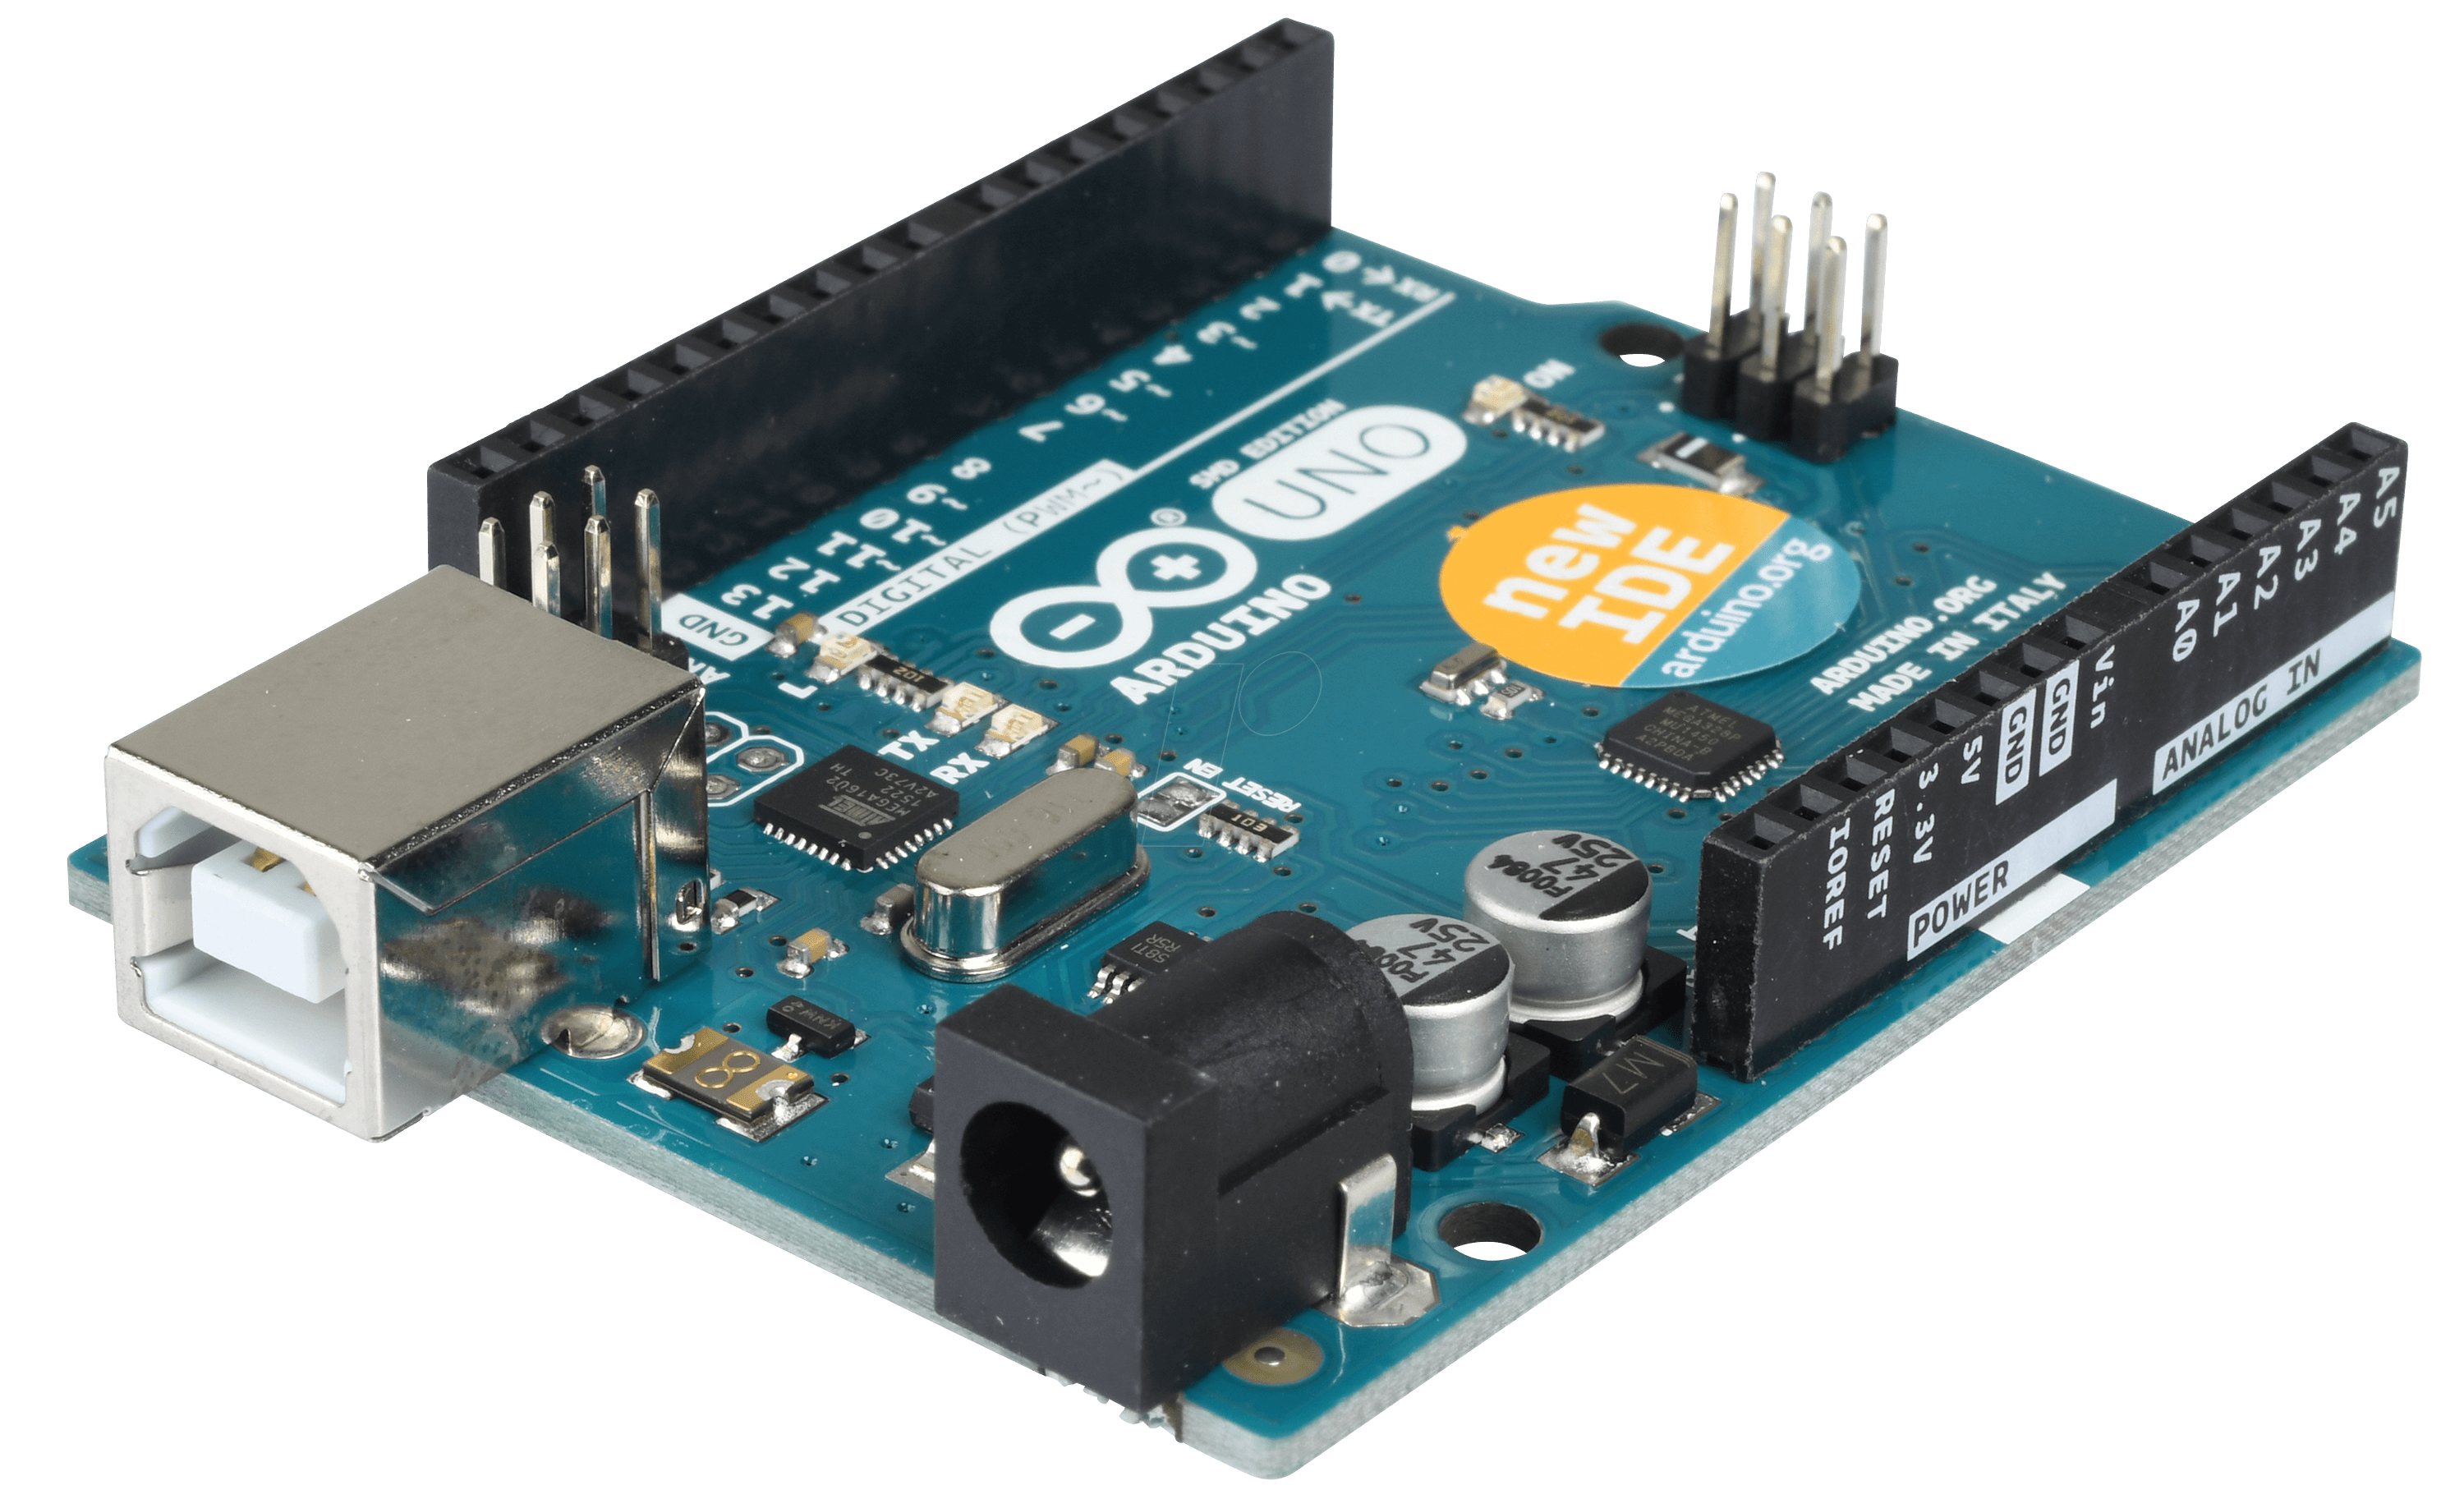 WHAT IS ARDUINO ?